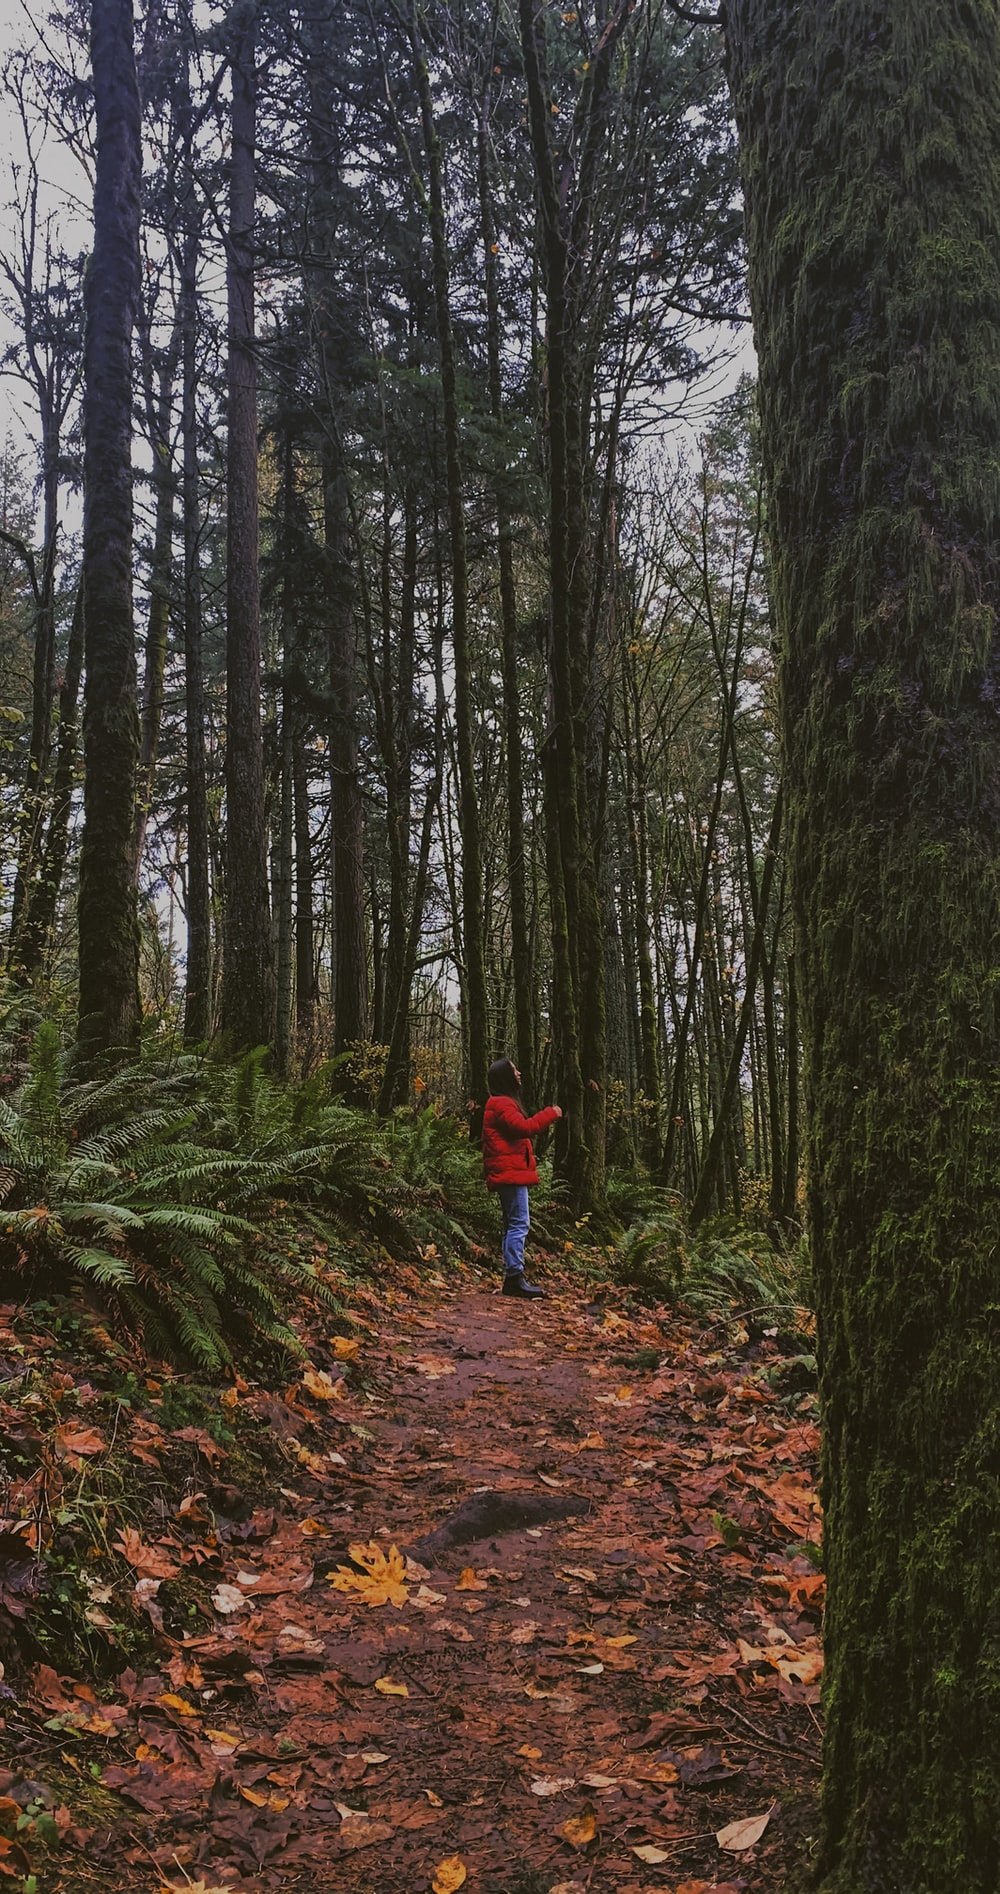 child in red jacket and blue pants walking on forest during daytime